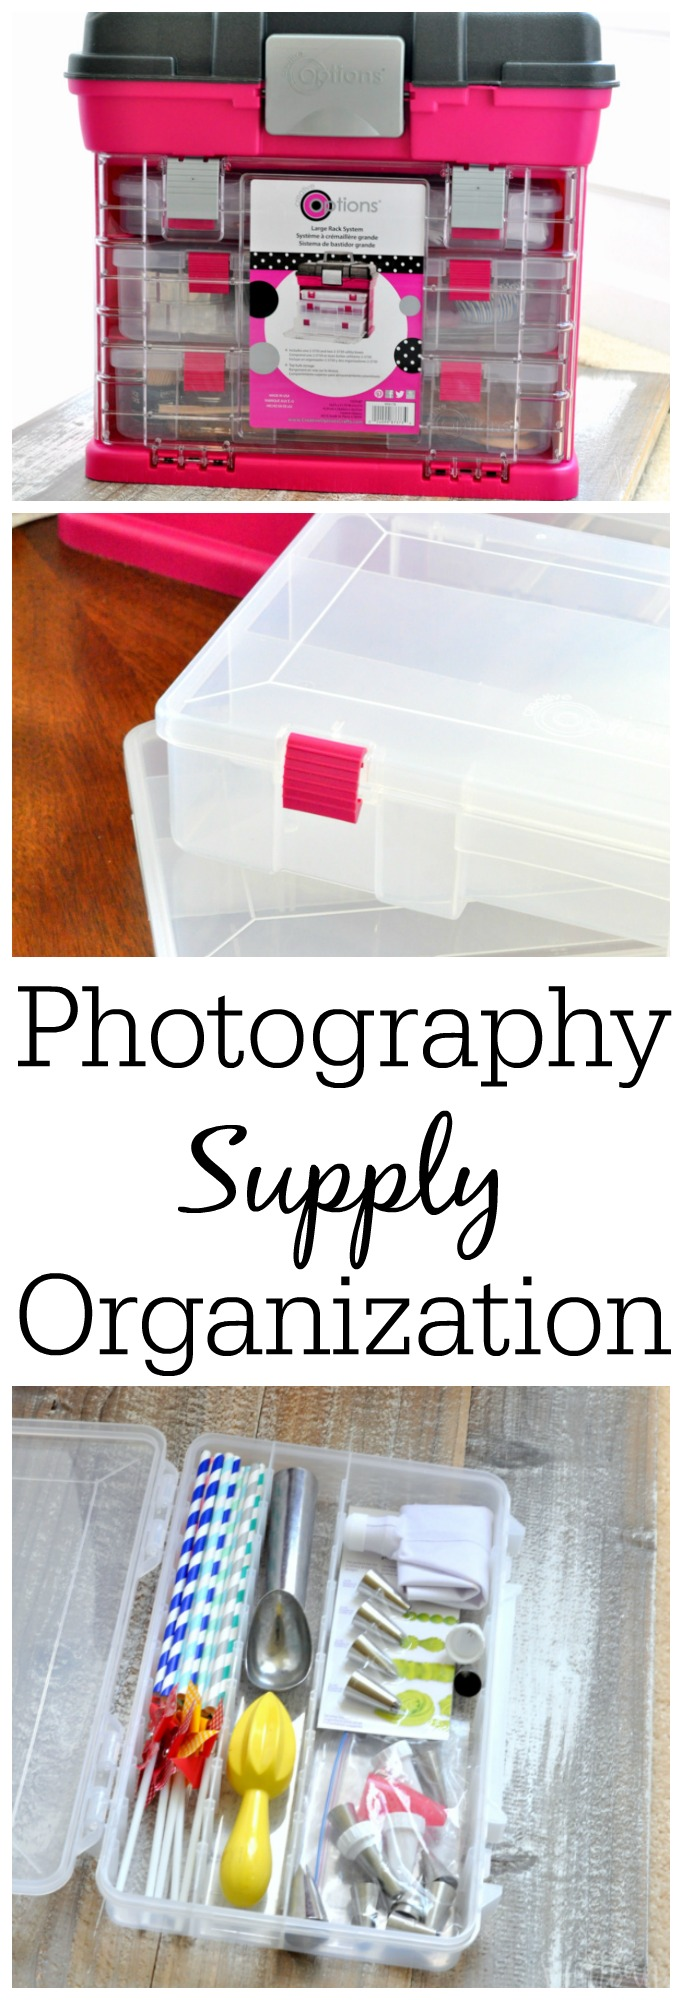 photography-supply-organization